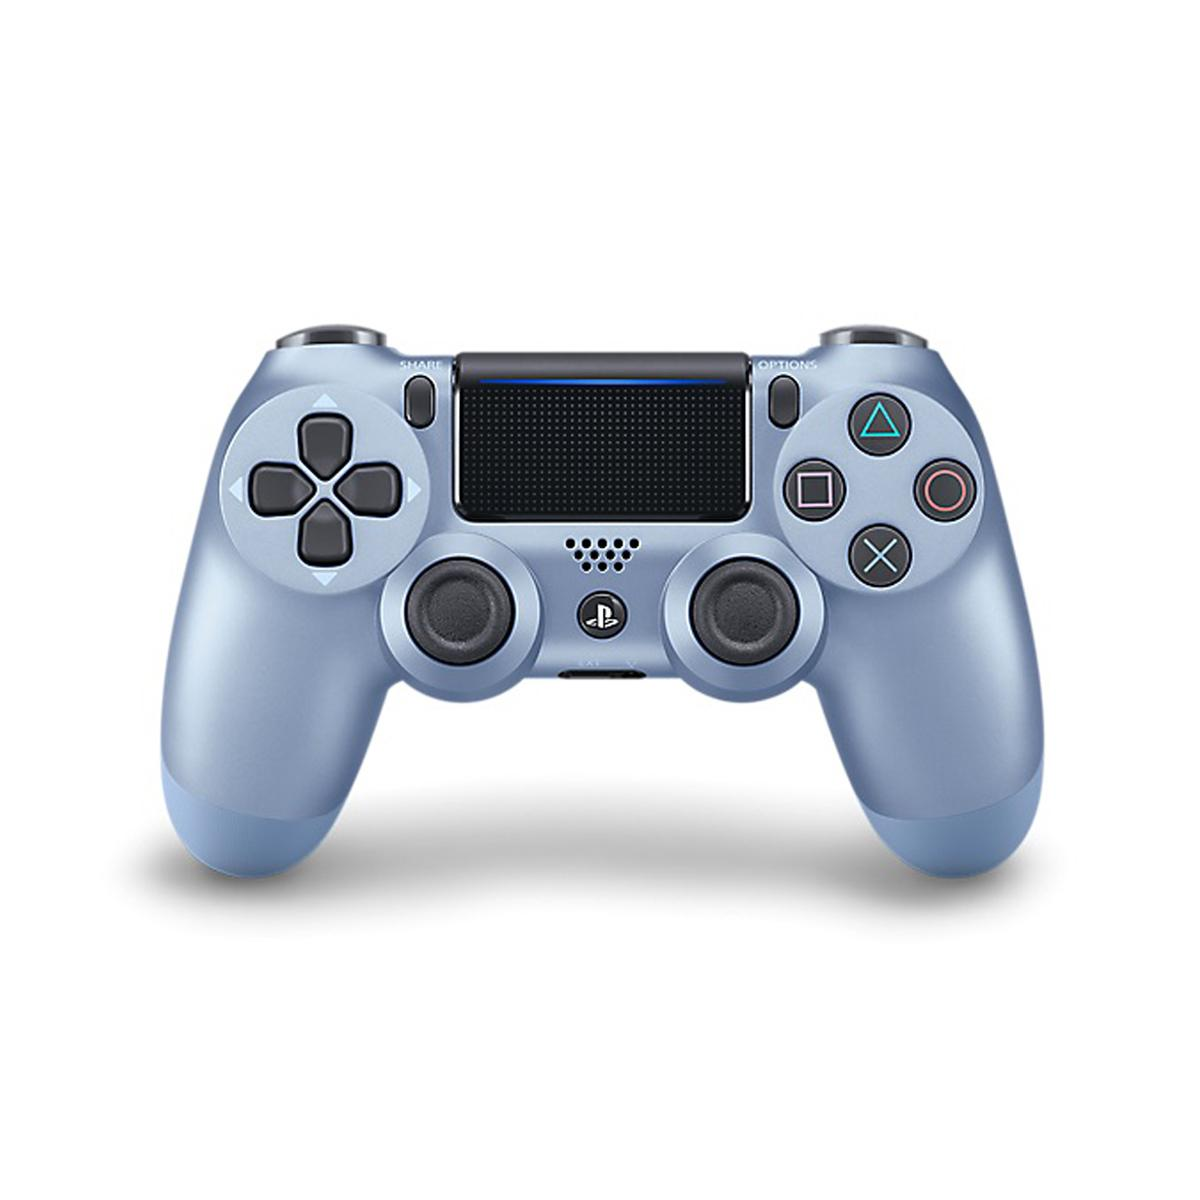 Sony PS4 Wireless Controller - Blue